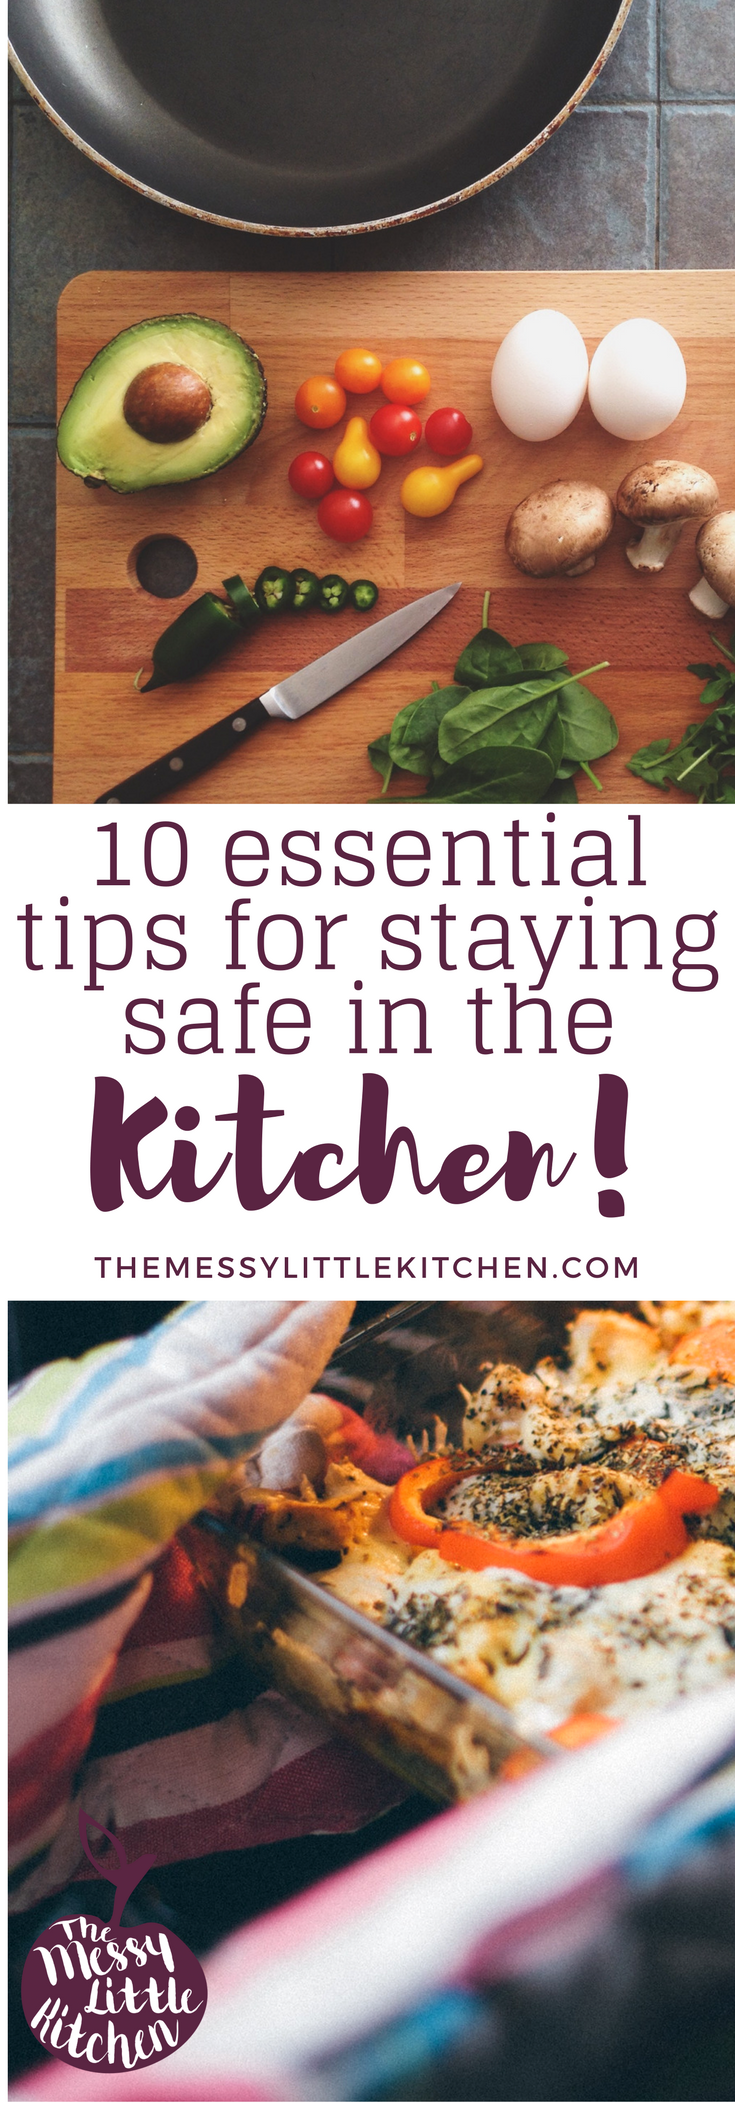 10 Essential Steps for Staying Safe in the Kitchen tall.png